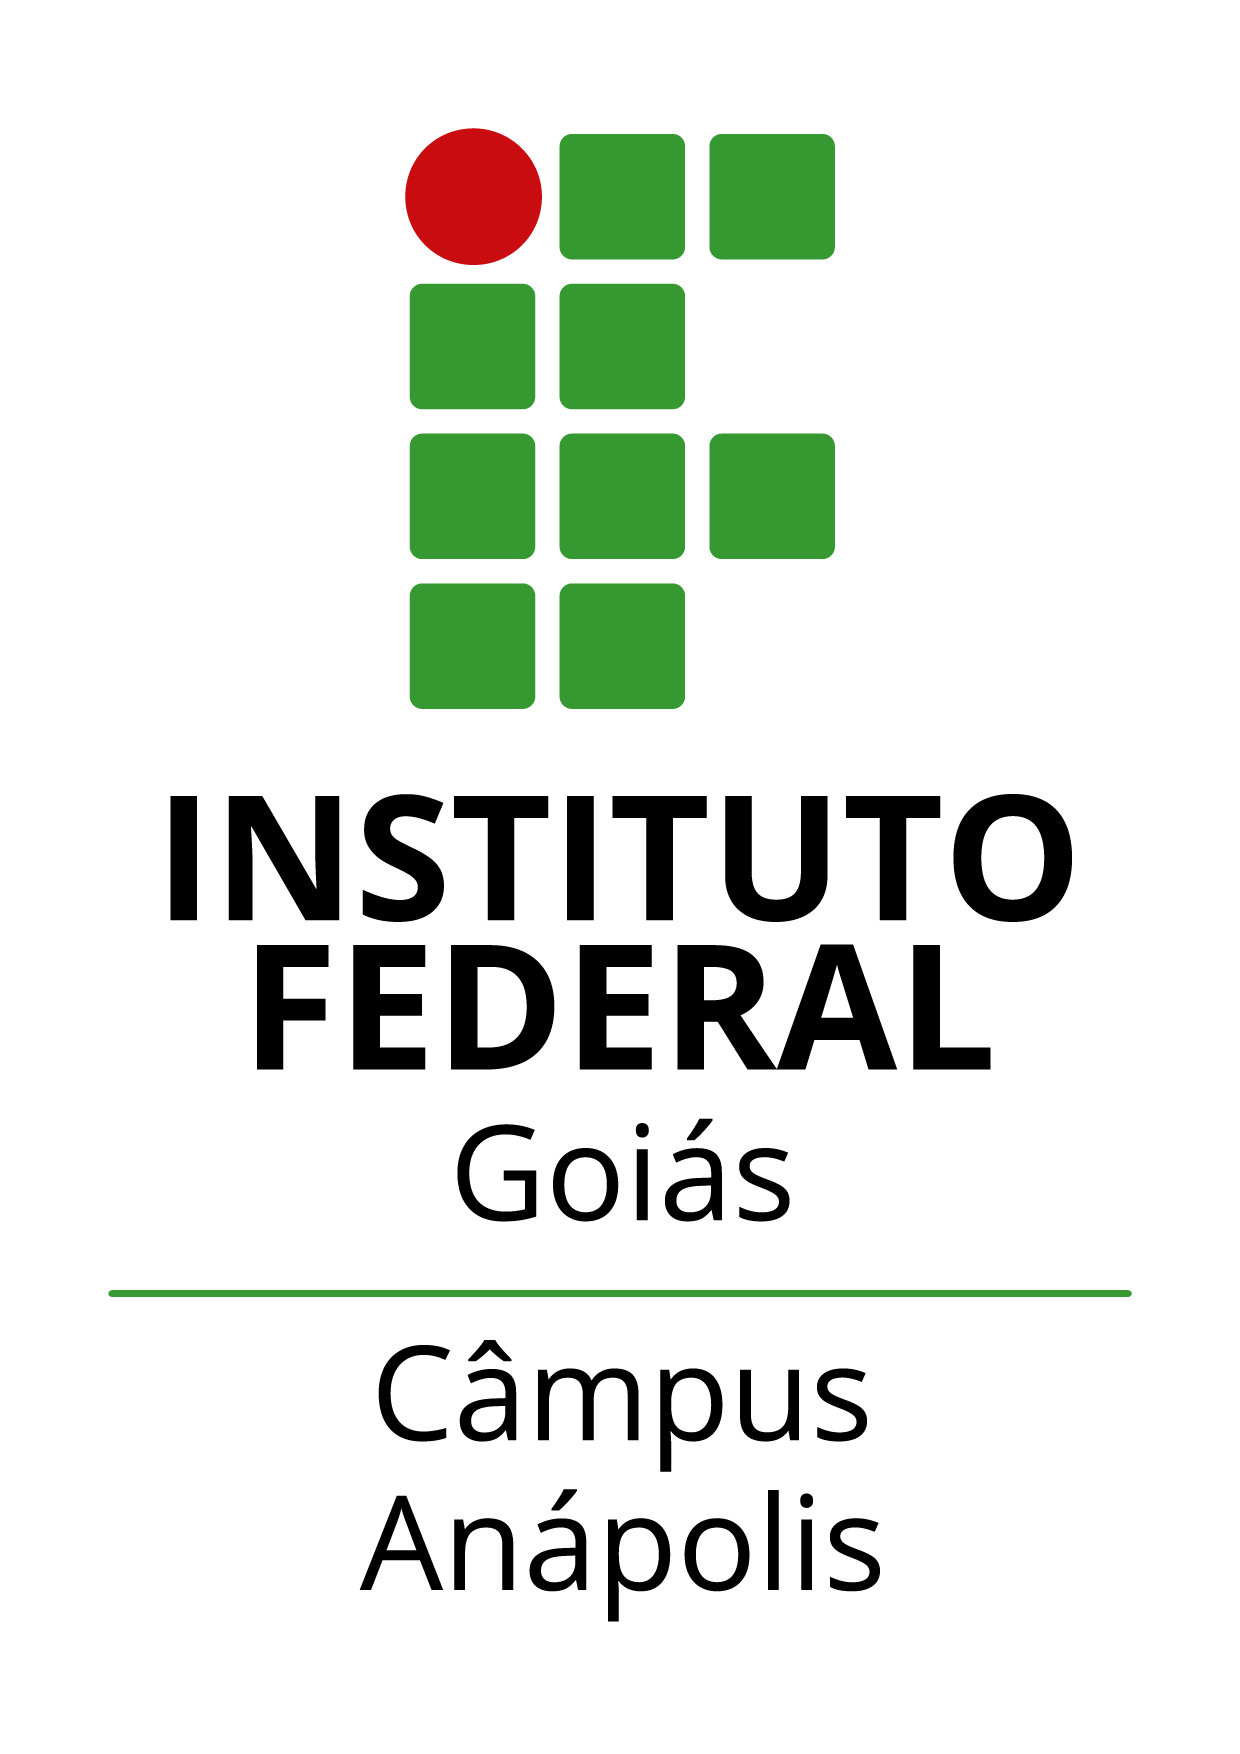 Logo do IFG - Câmpus Anápolis